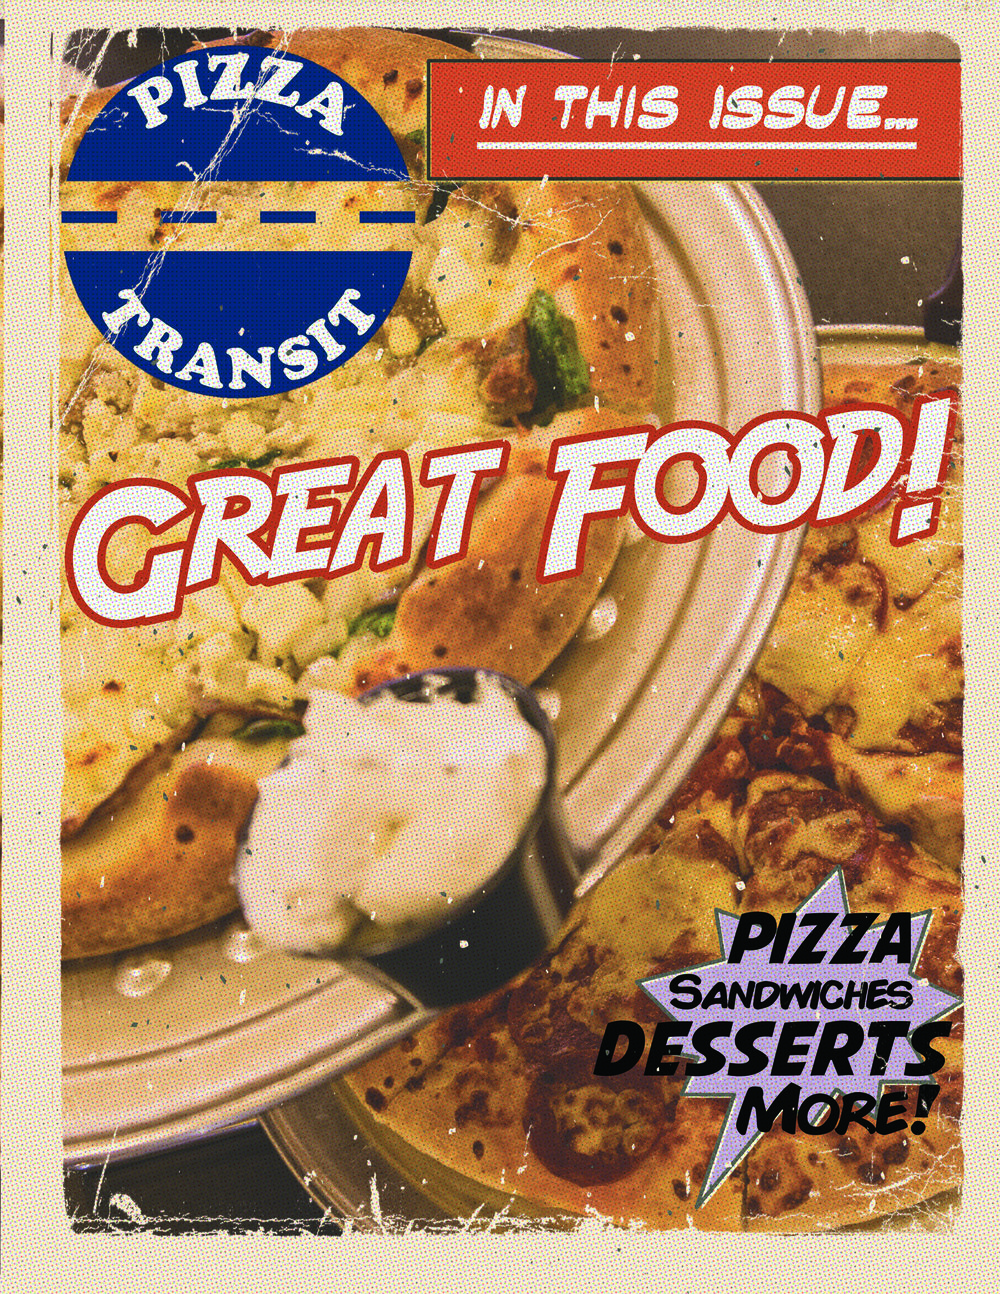 pizza transit cover comic bookv update.jpg